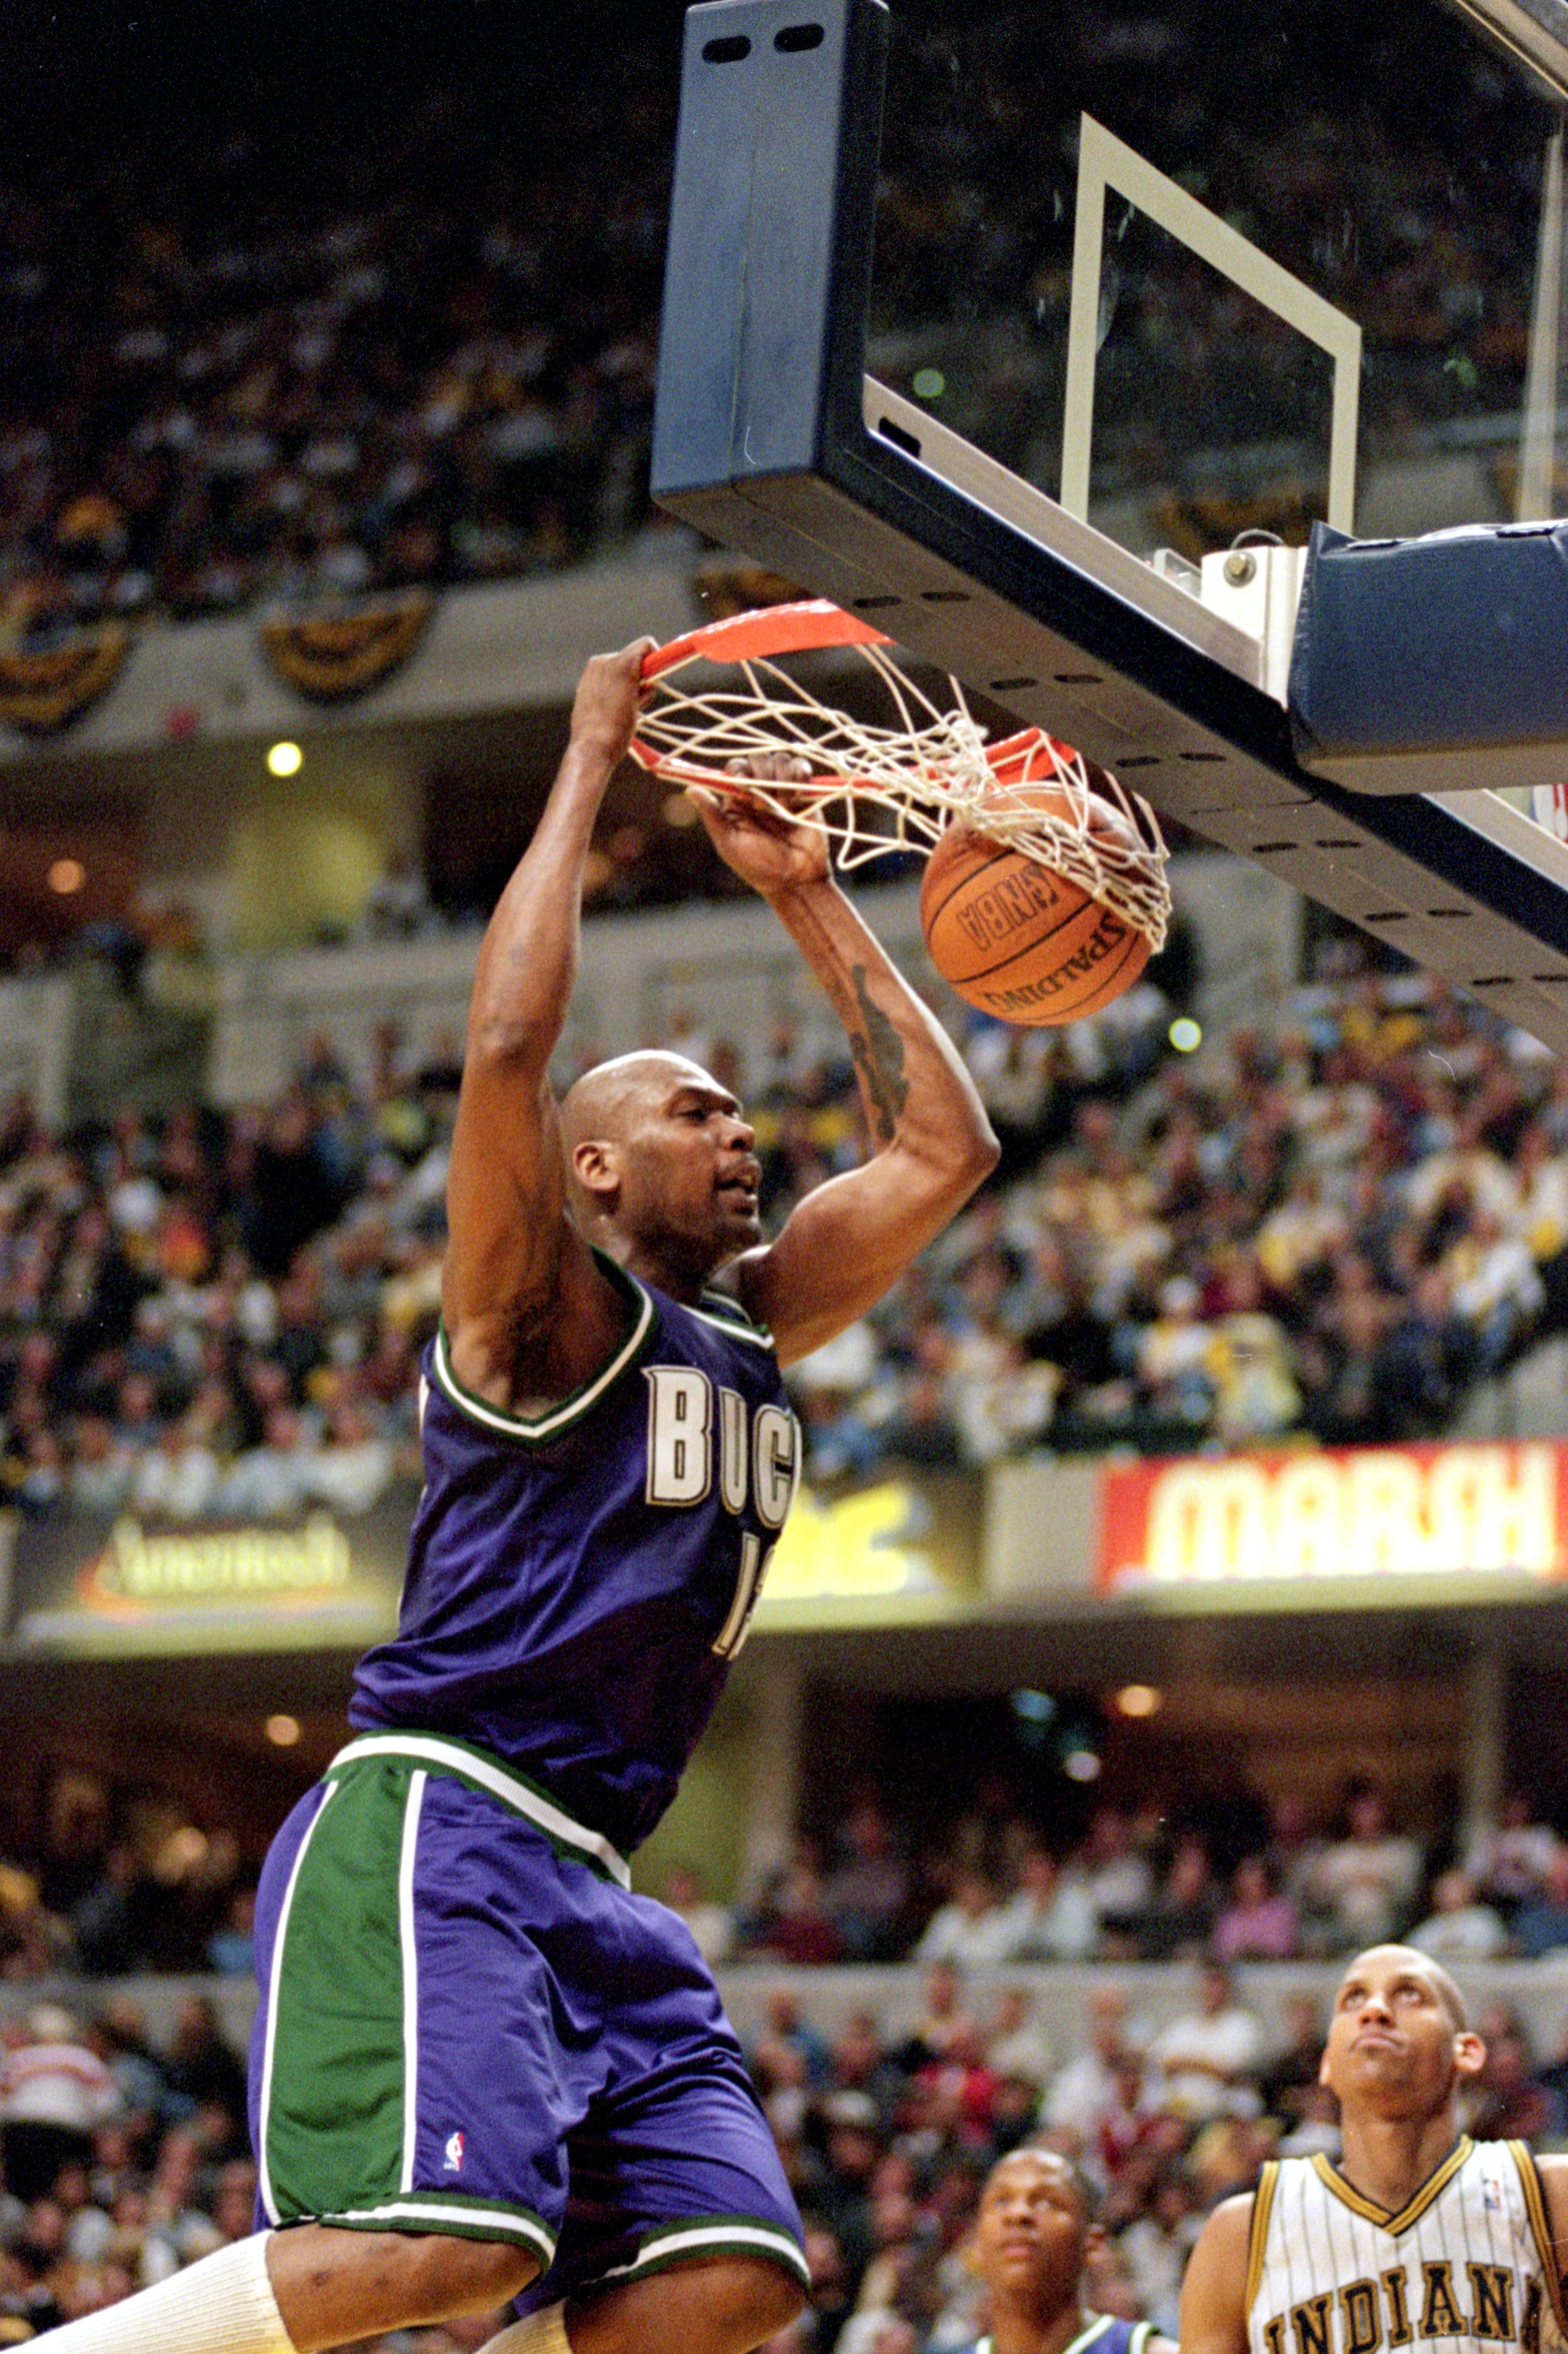 23 Apr 2000: Glenn Robinson #13 of the Milwaukee Bucks makes a slam dunk during the NBA Eastern Conference Playoffs Round One Game against the Indiana Pacers at the Conseco Fieldhouse in Indianapolis, Indiana. The Pacers defeated the Bucks 88-85..   Manda